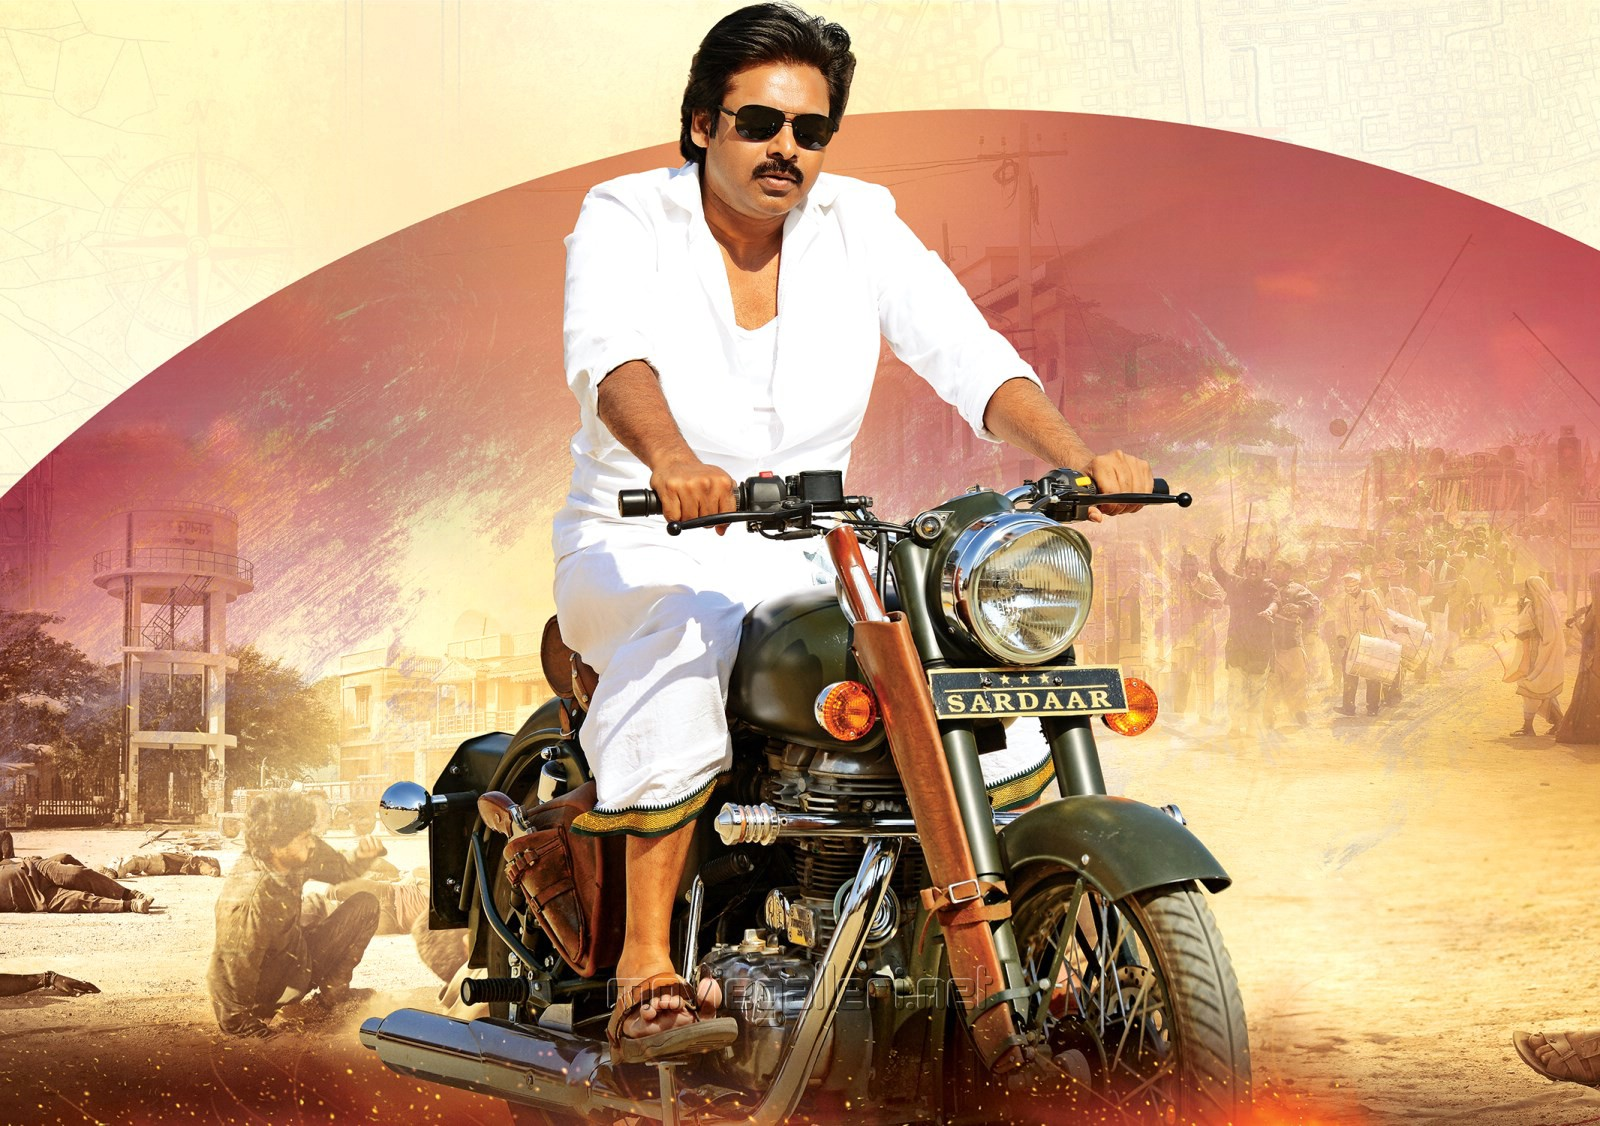 hd background sardaar gabbar singh movie pawan kalyan actor poster